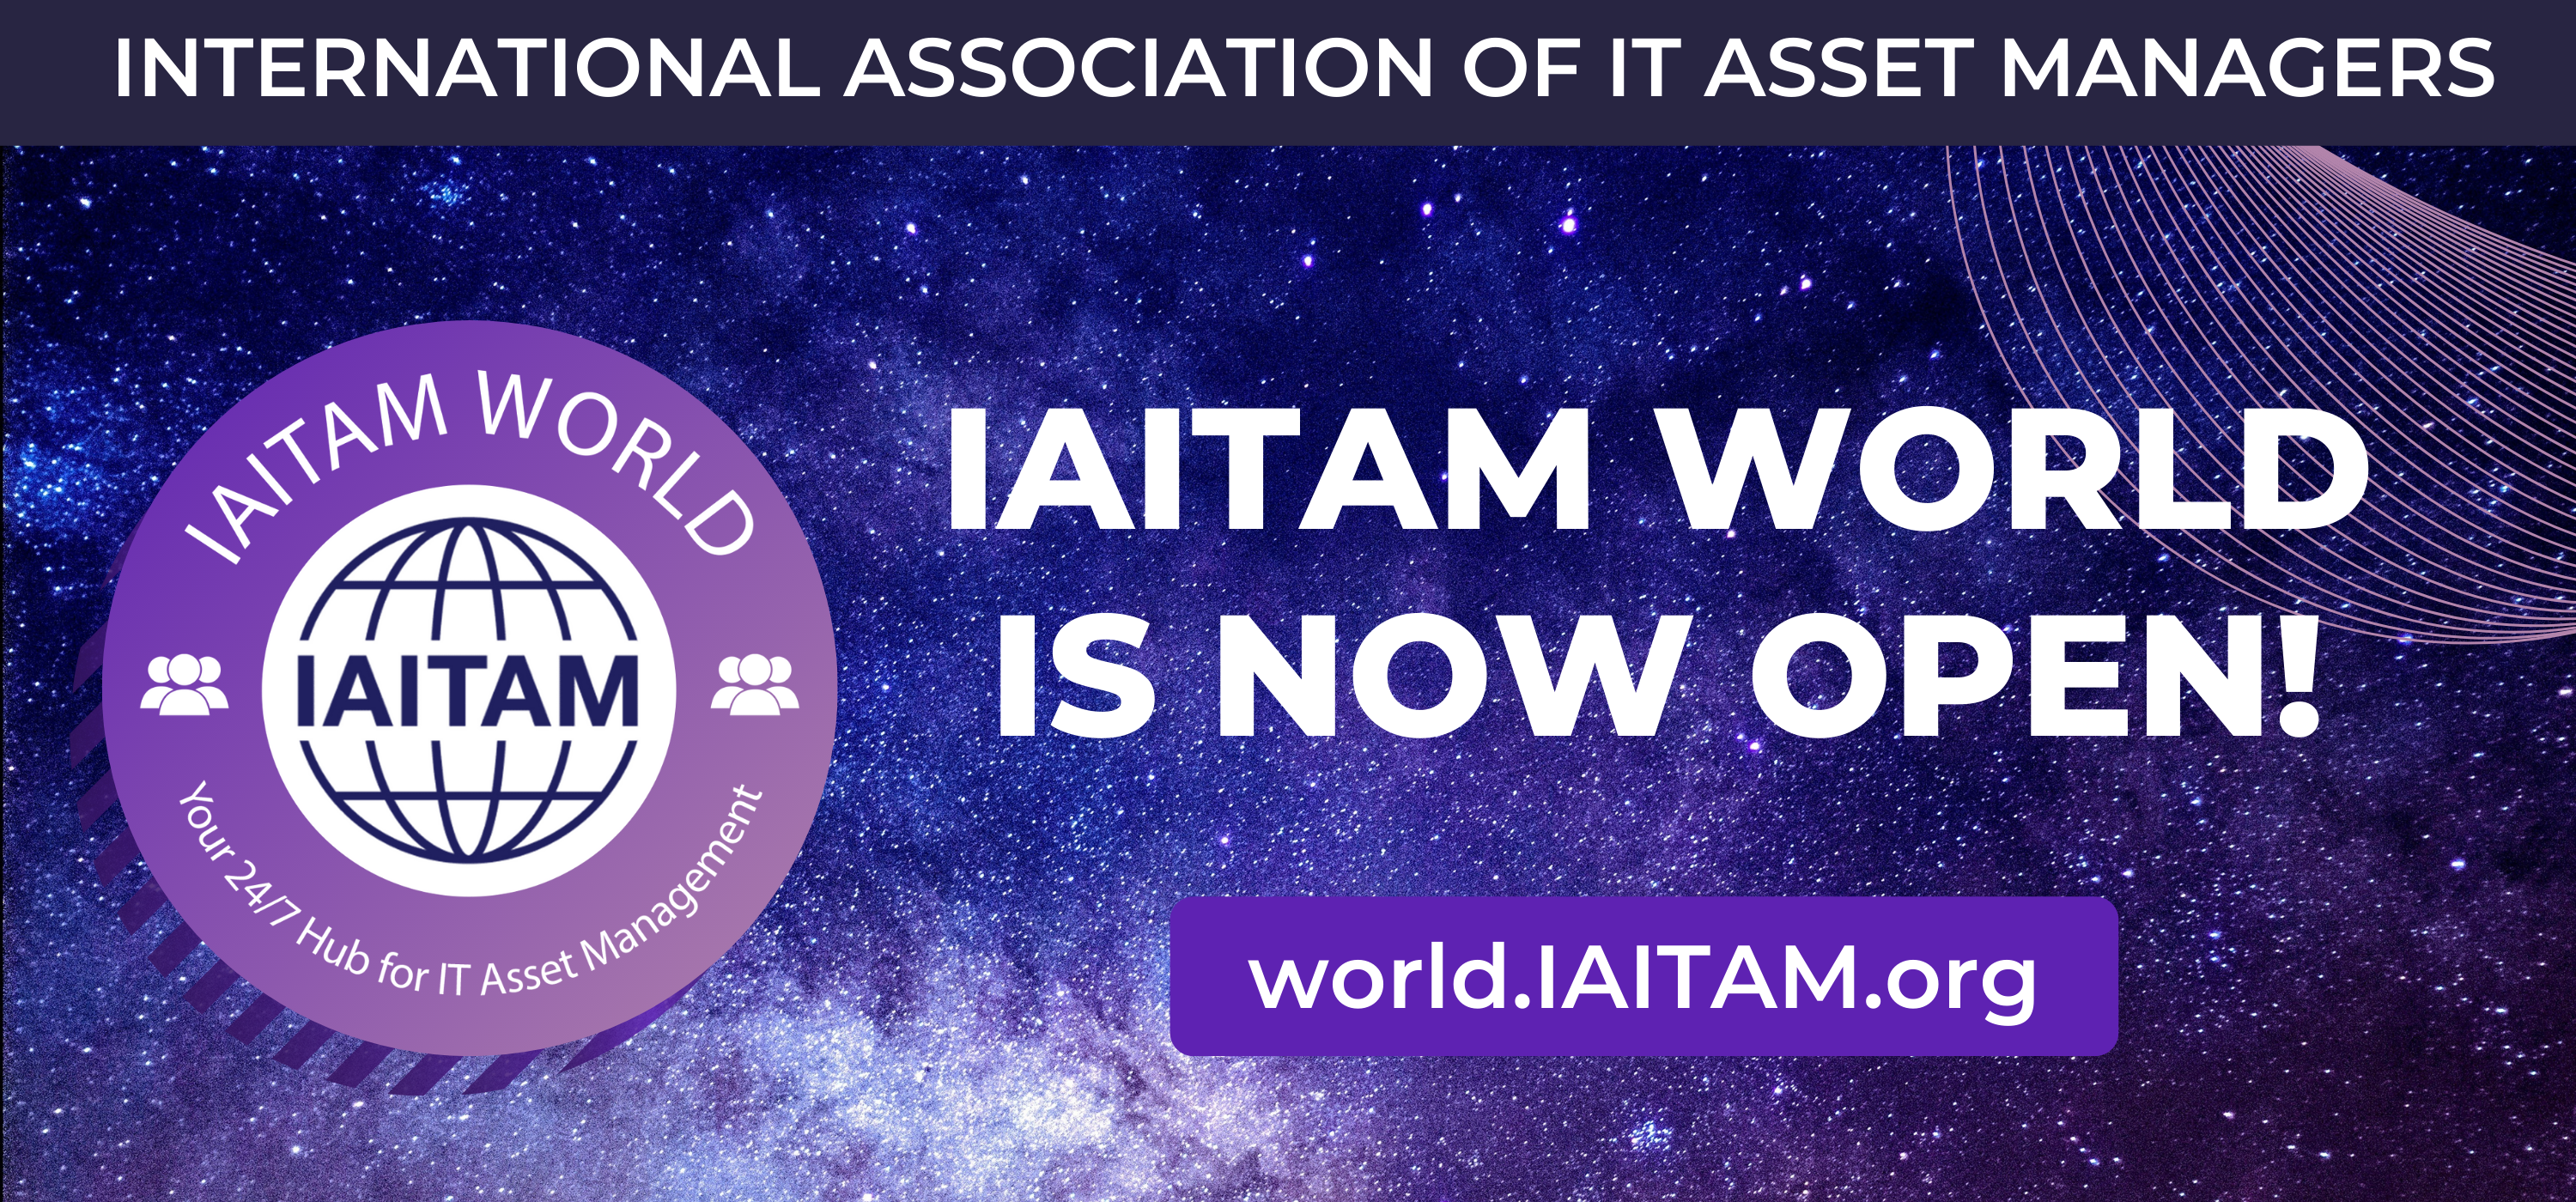 Introducing IAITAM World, the only 24/7 platform for the IT Asset Management industry to connect, network, solve issues and innovate the future.